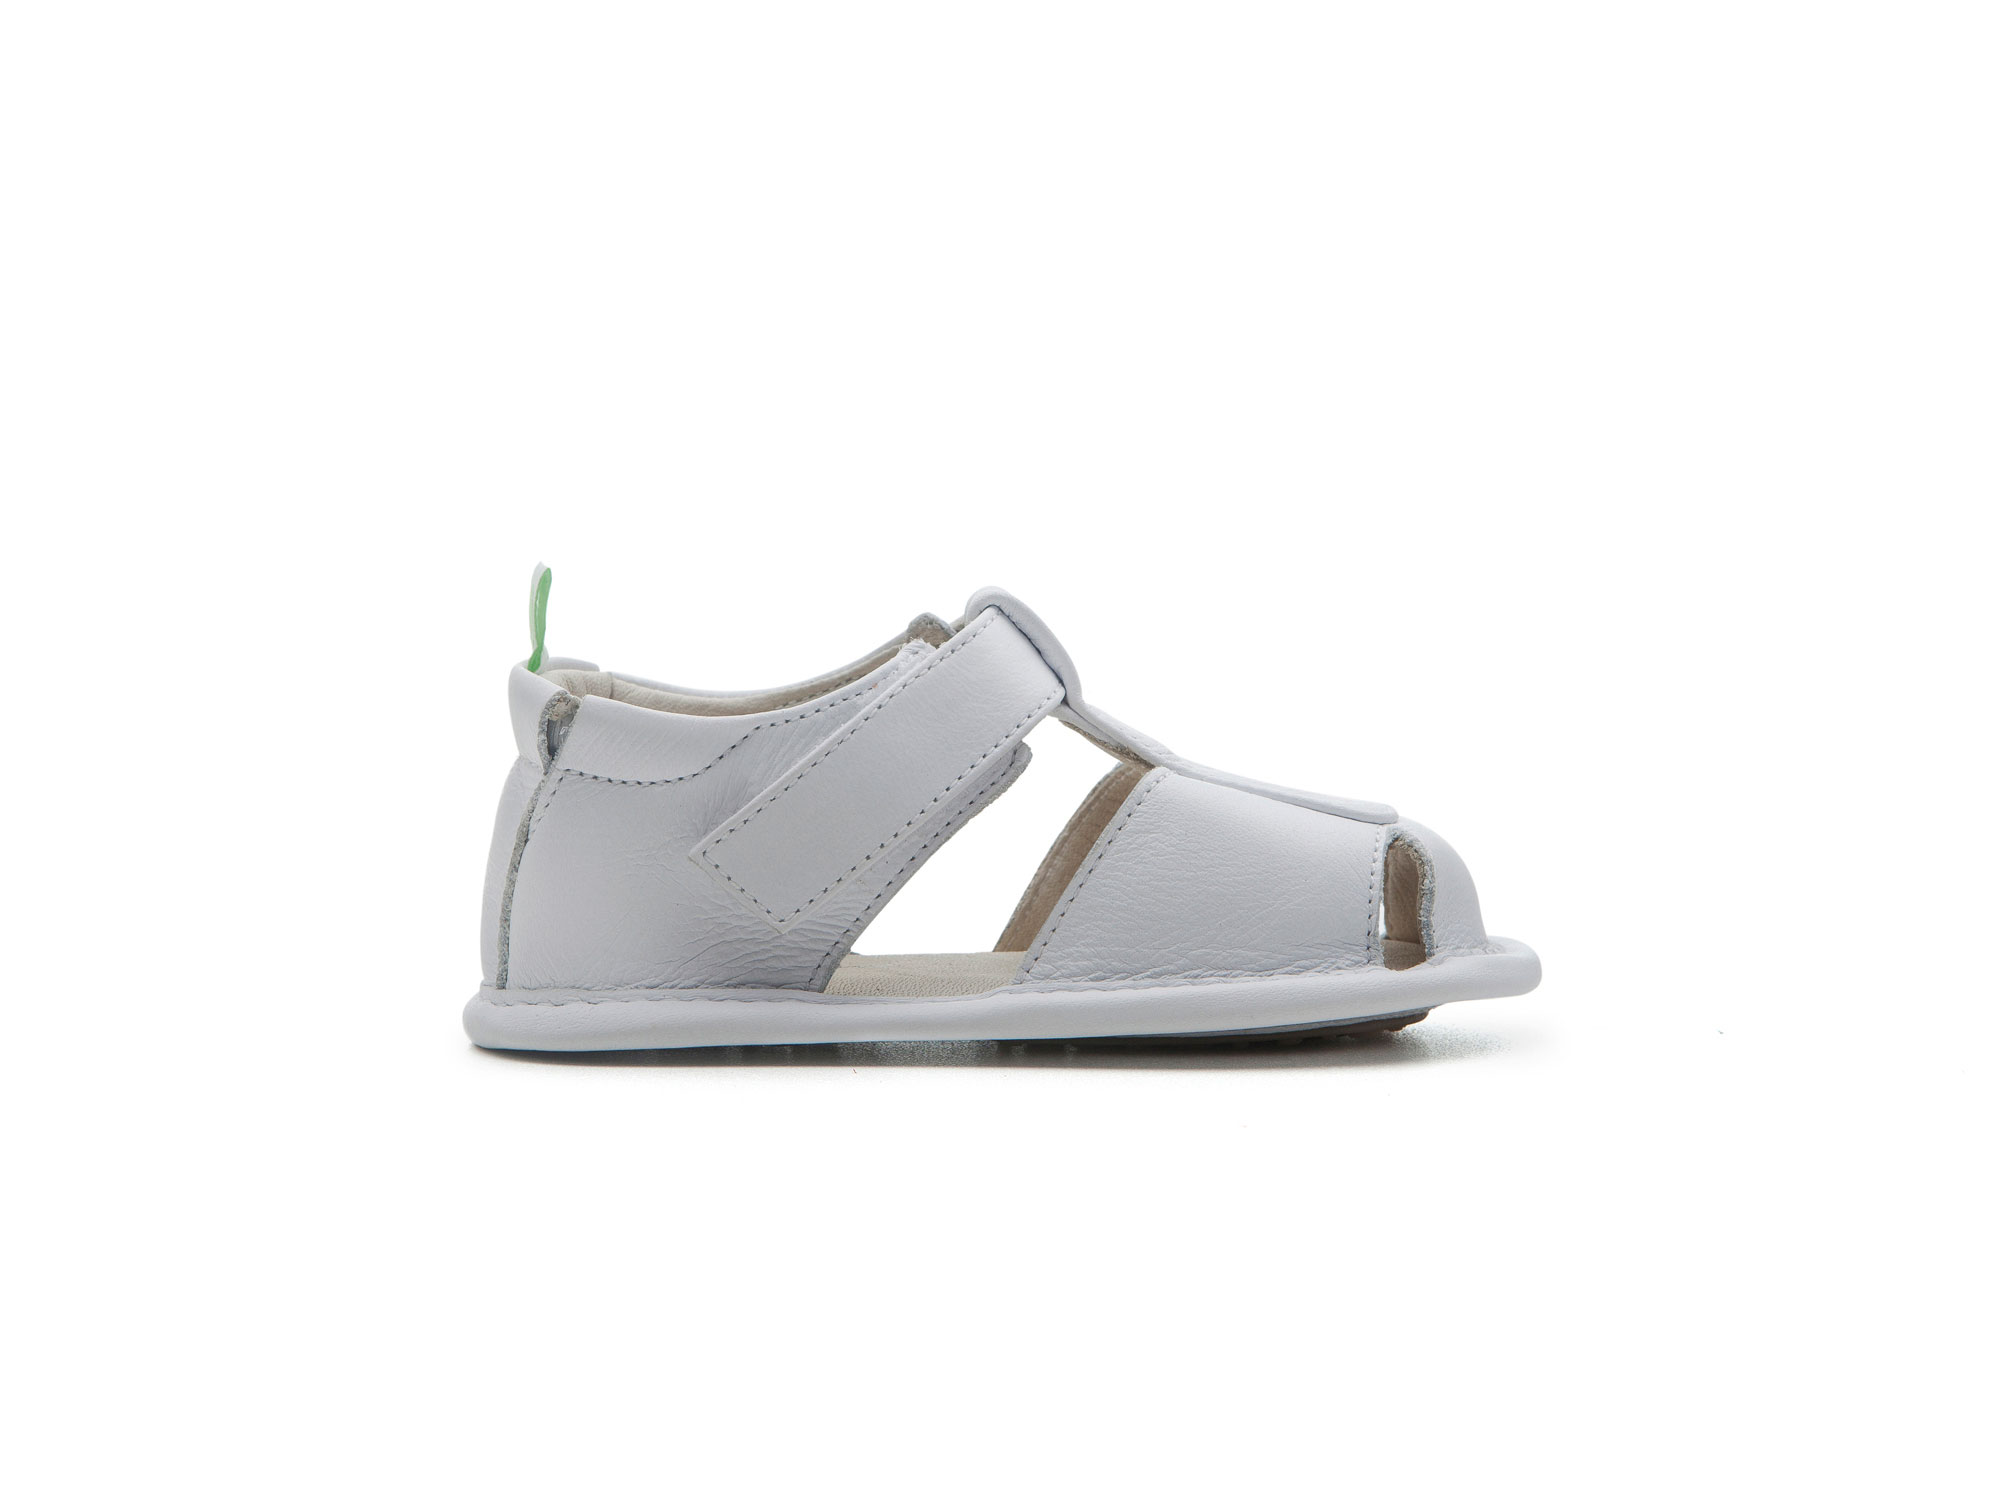 Sandal Parky White  Baby for ages 0 to 2 years - 2